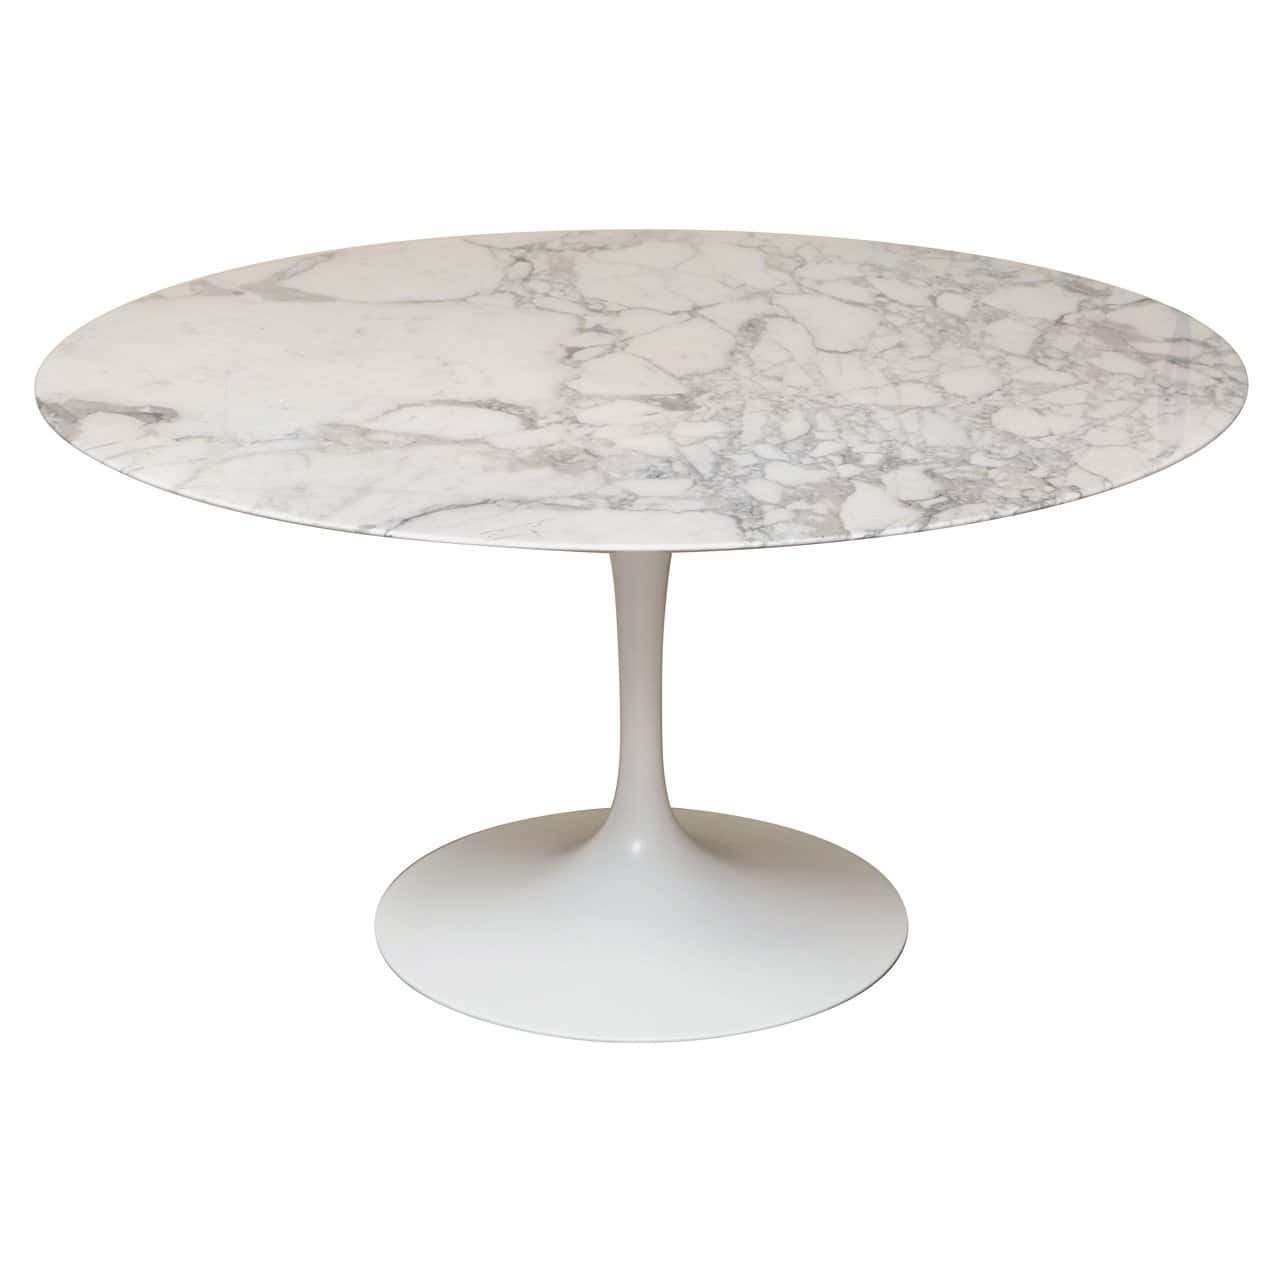 Round Marble Dining Table Clasick